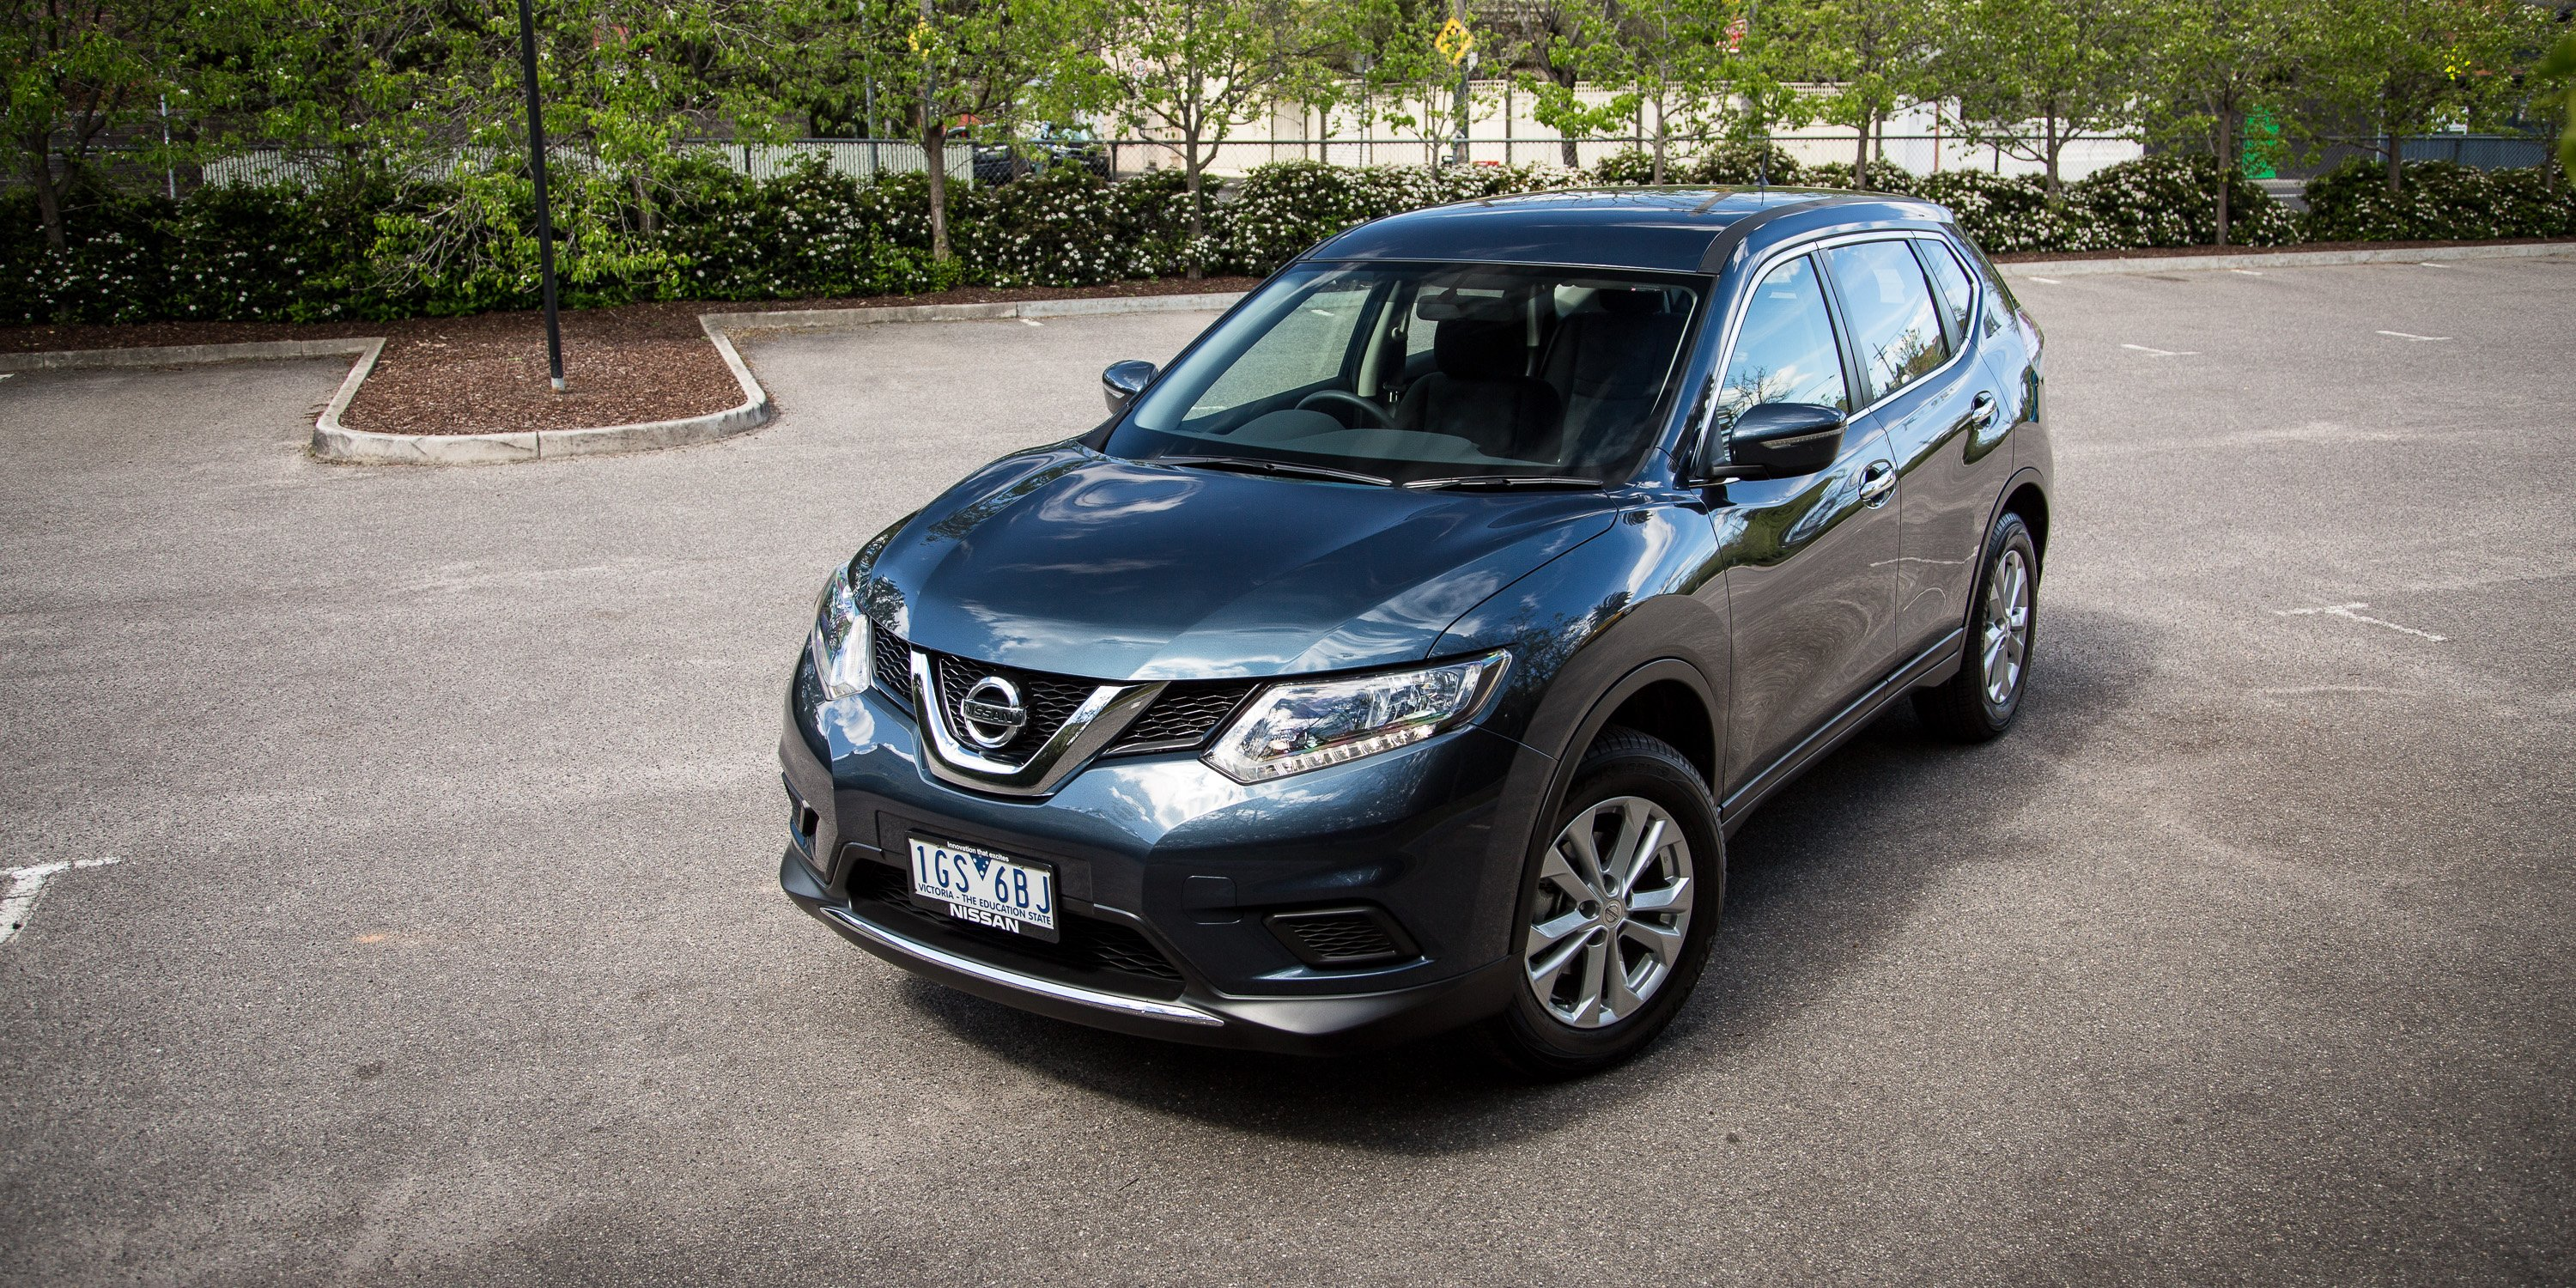 2016 nissan x trail st awd review caradvice. Black Bedroom Furniture Sets. Home Design Ideas